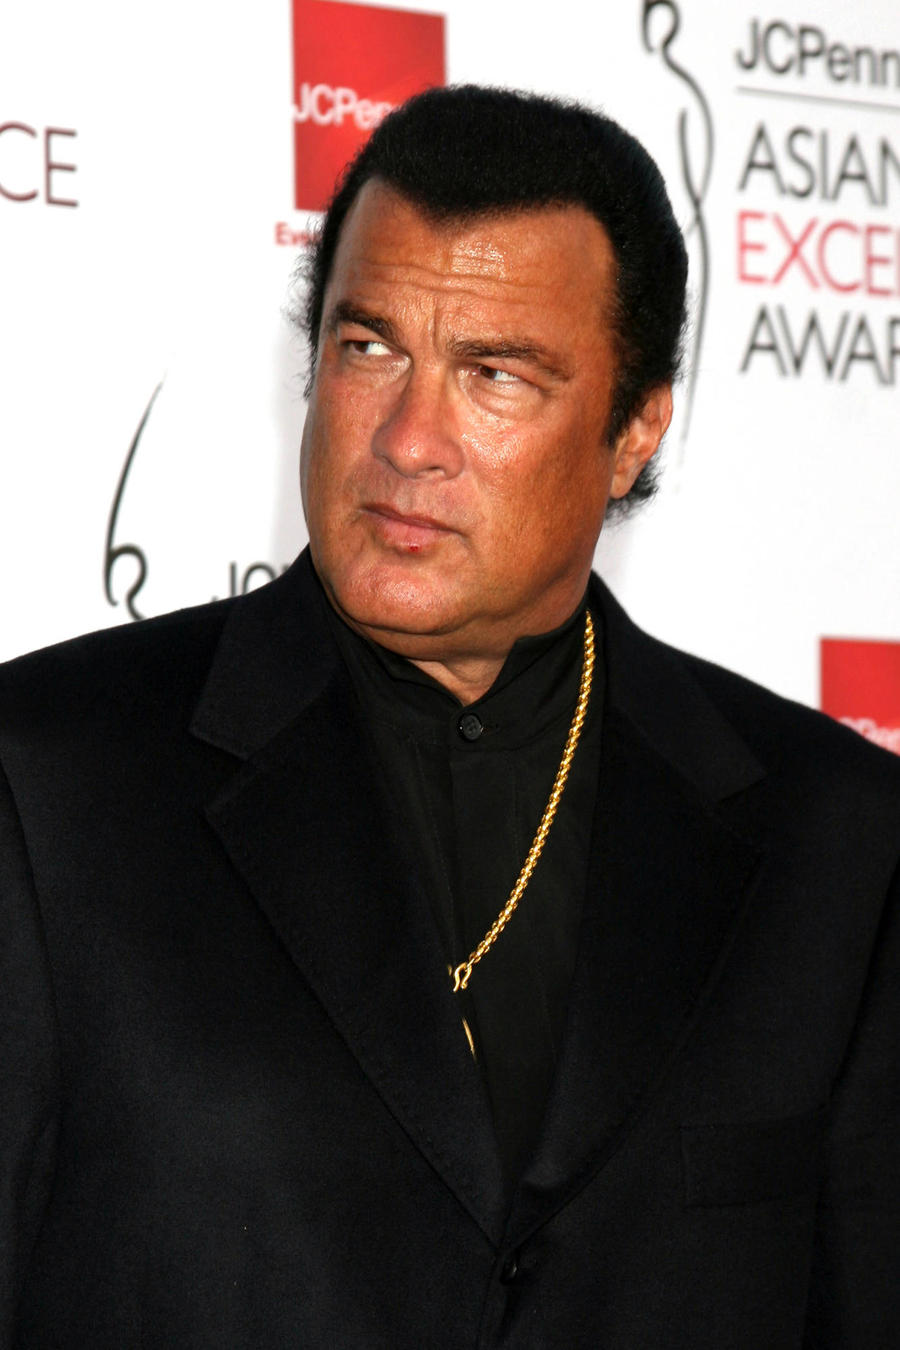 Steven Seagal Granted Russian Citizenship By President Vladimir Putin